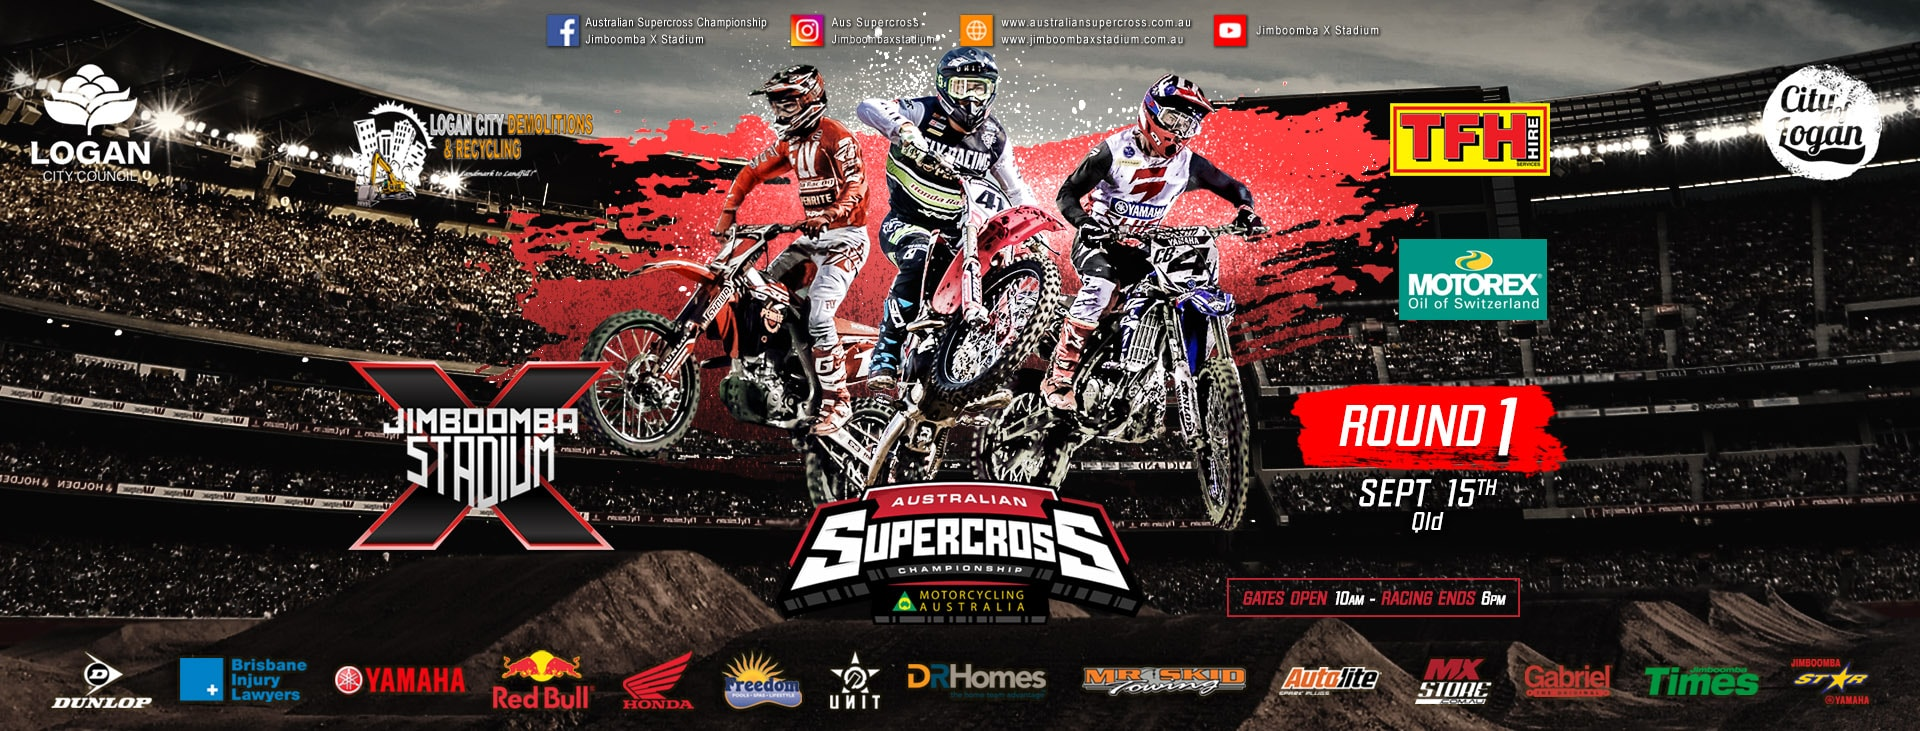 Tickets for Australian Supercross Championship Round 1: Jimboomba in Jimboomba from Ticketbooth